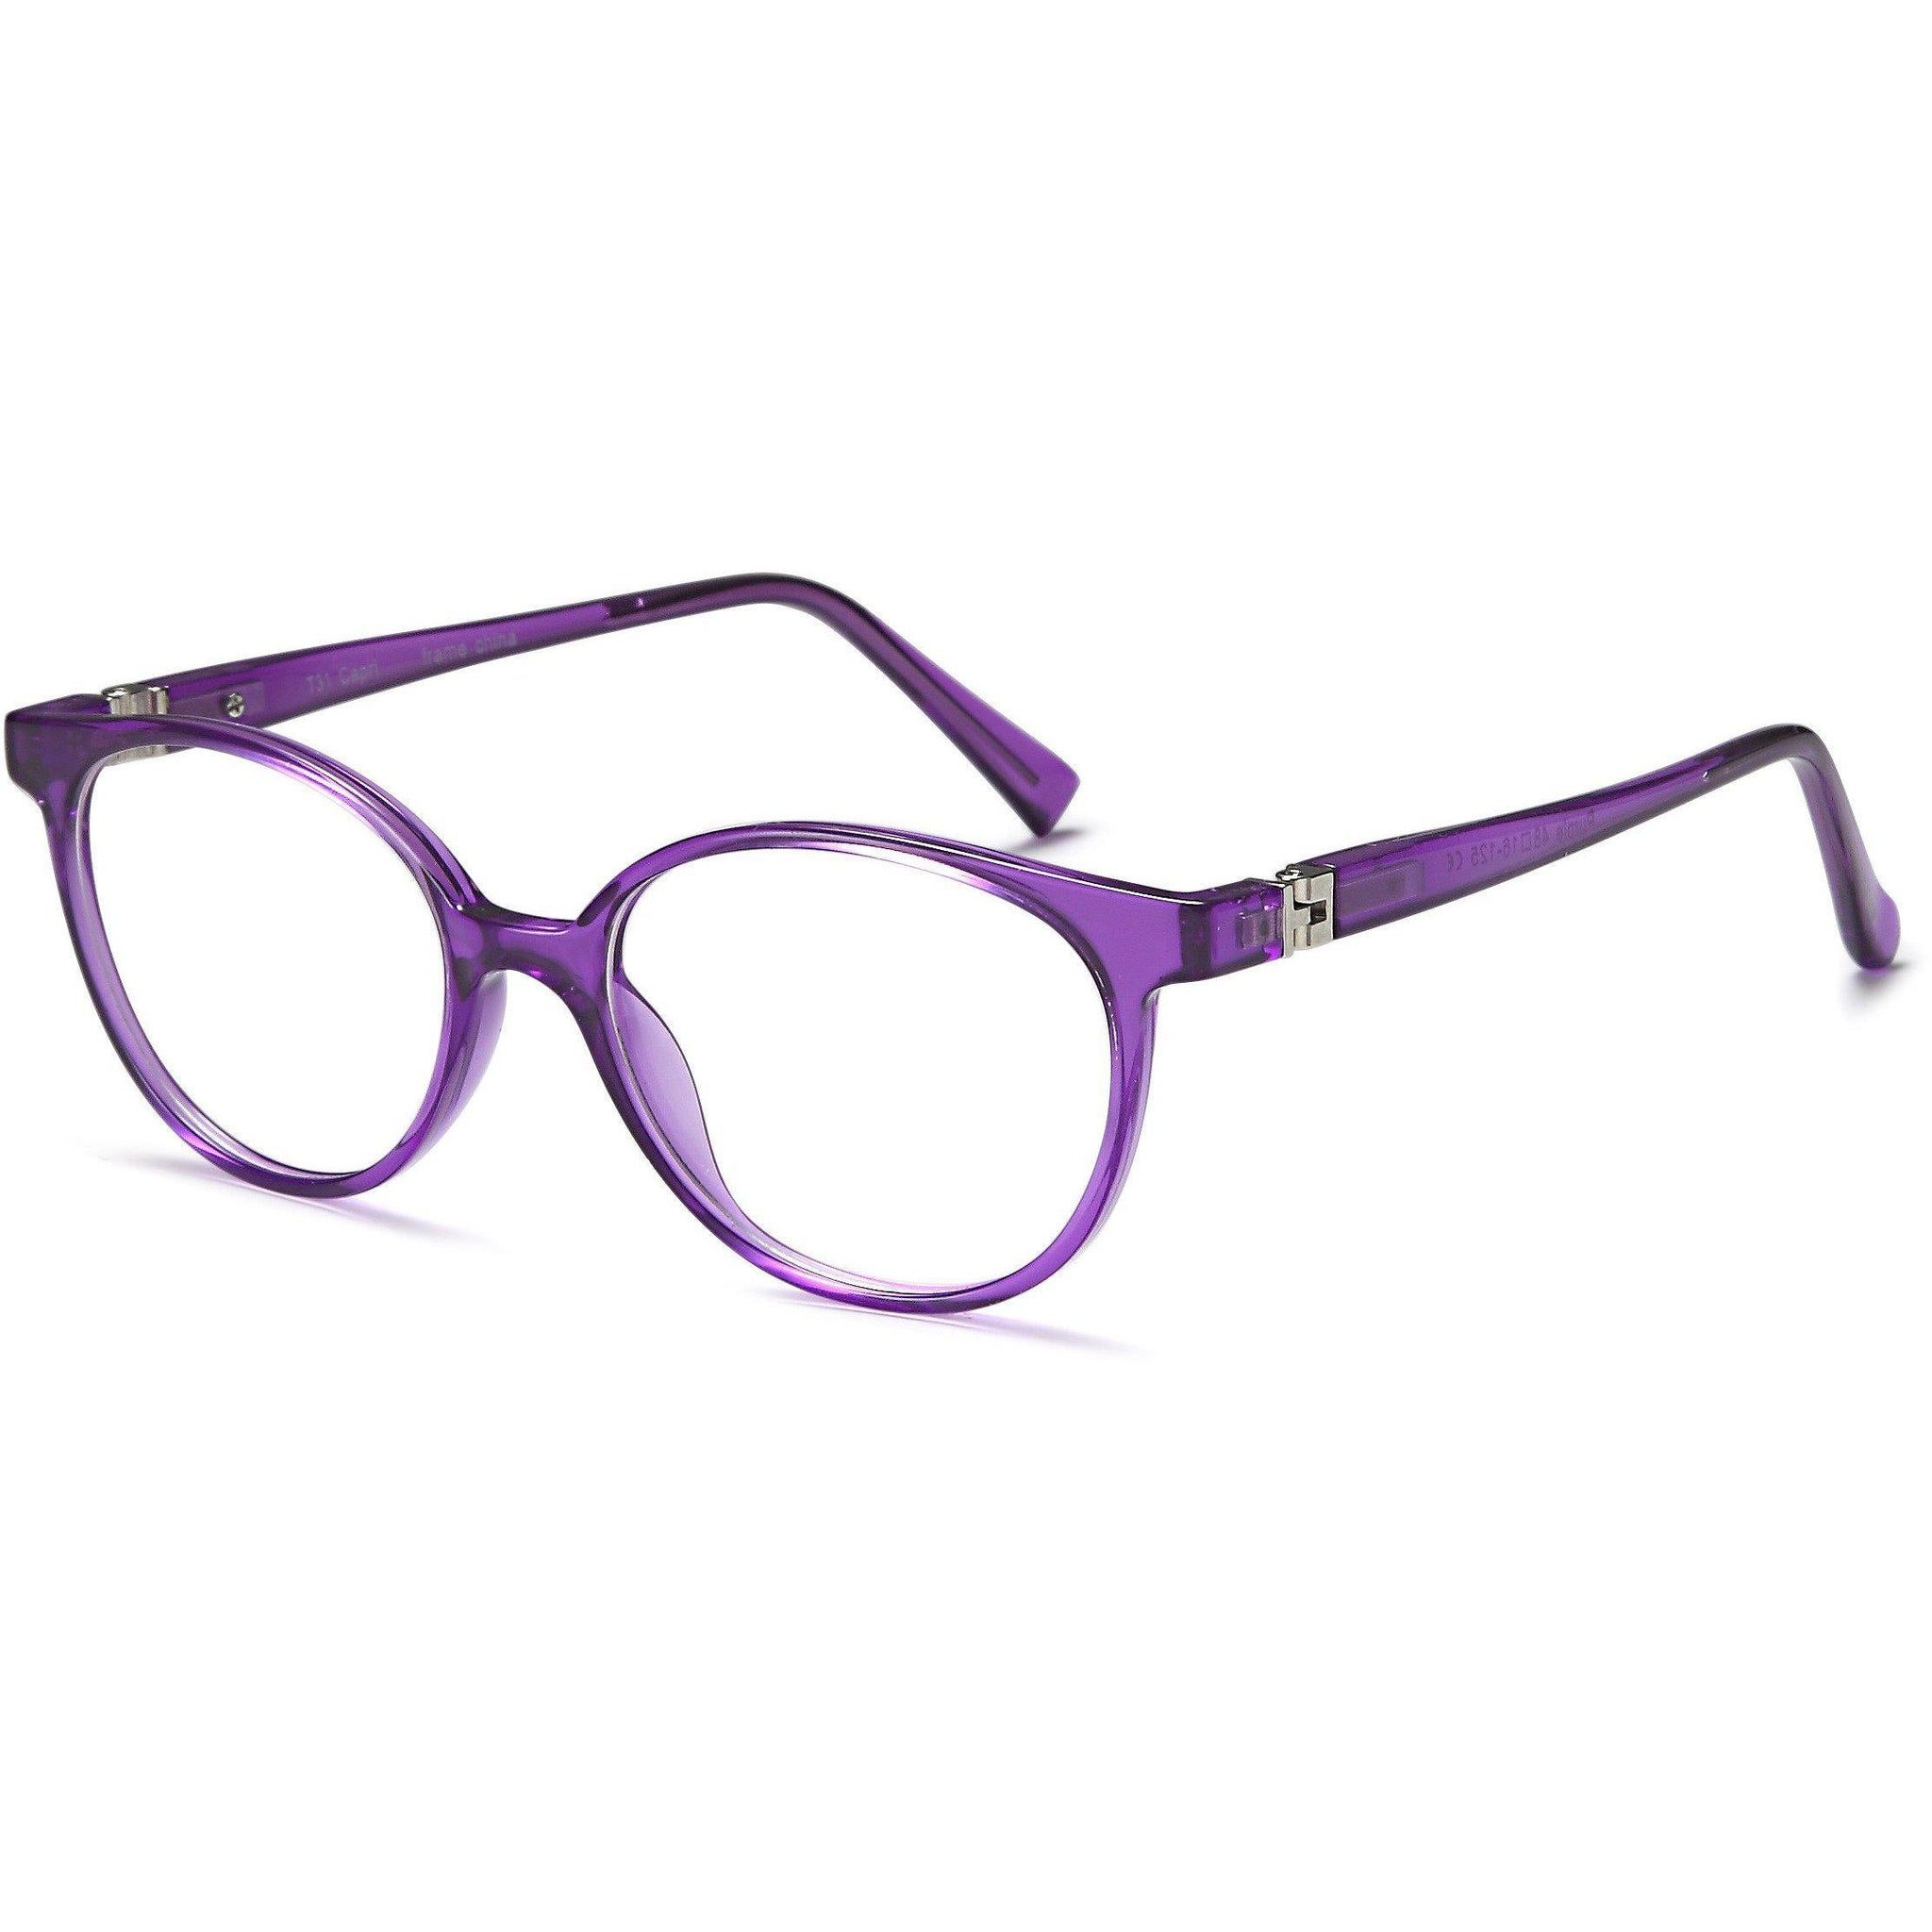 OnTrend Prescription Glasses T 31 Eyeglasses Frames